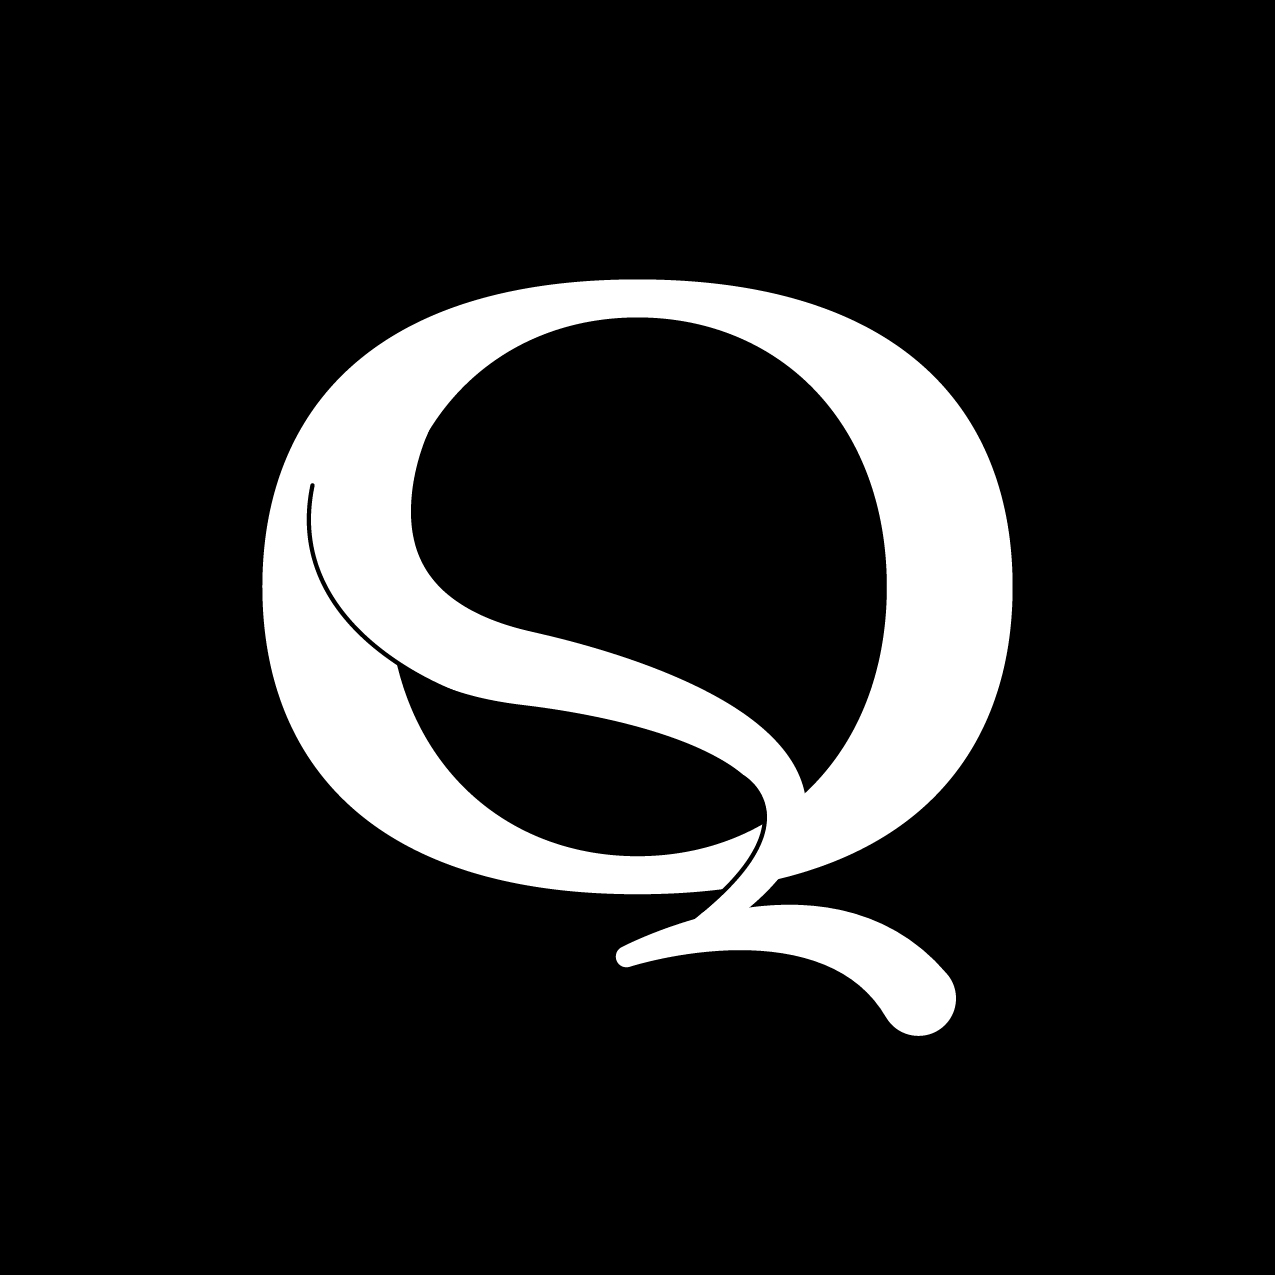 Letter Q2 Design by Furia